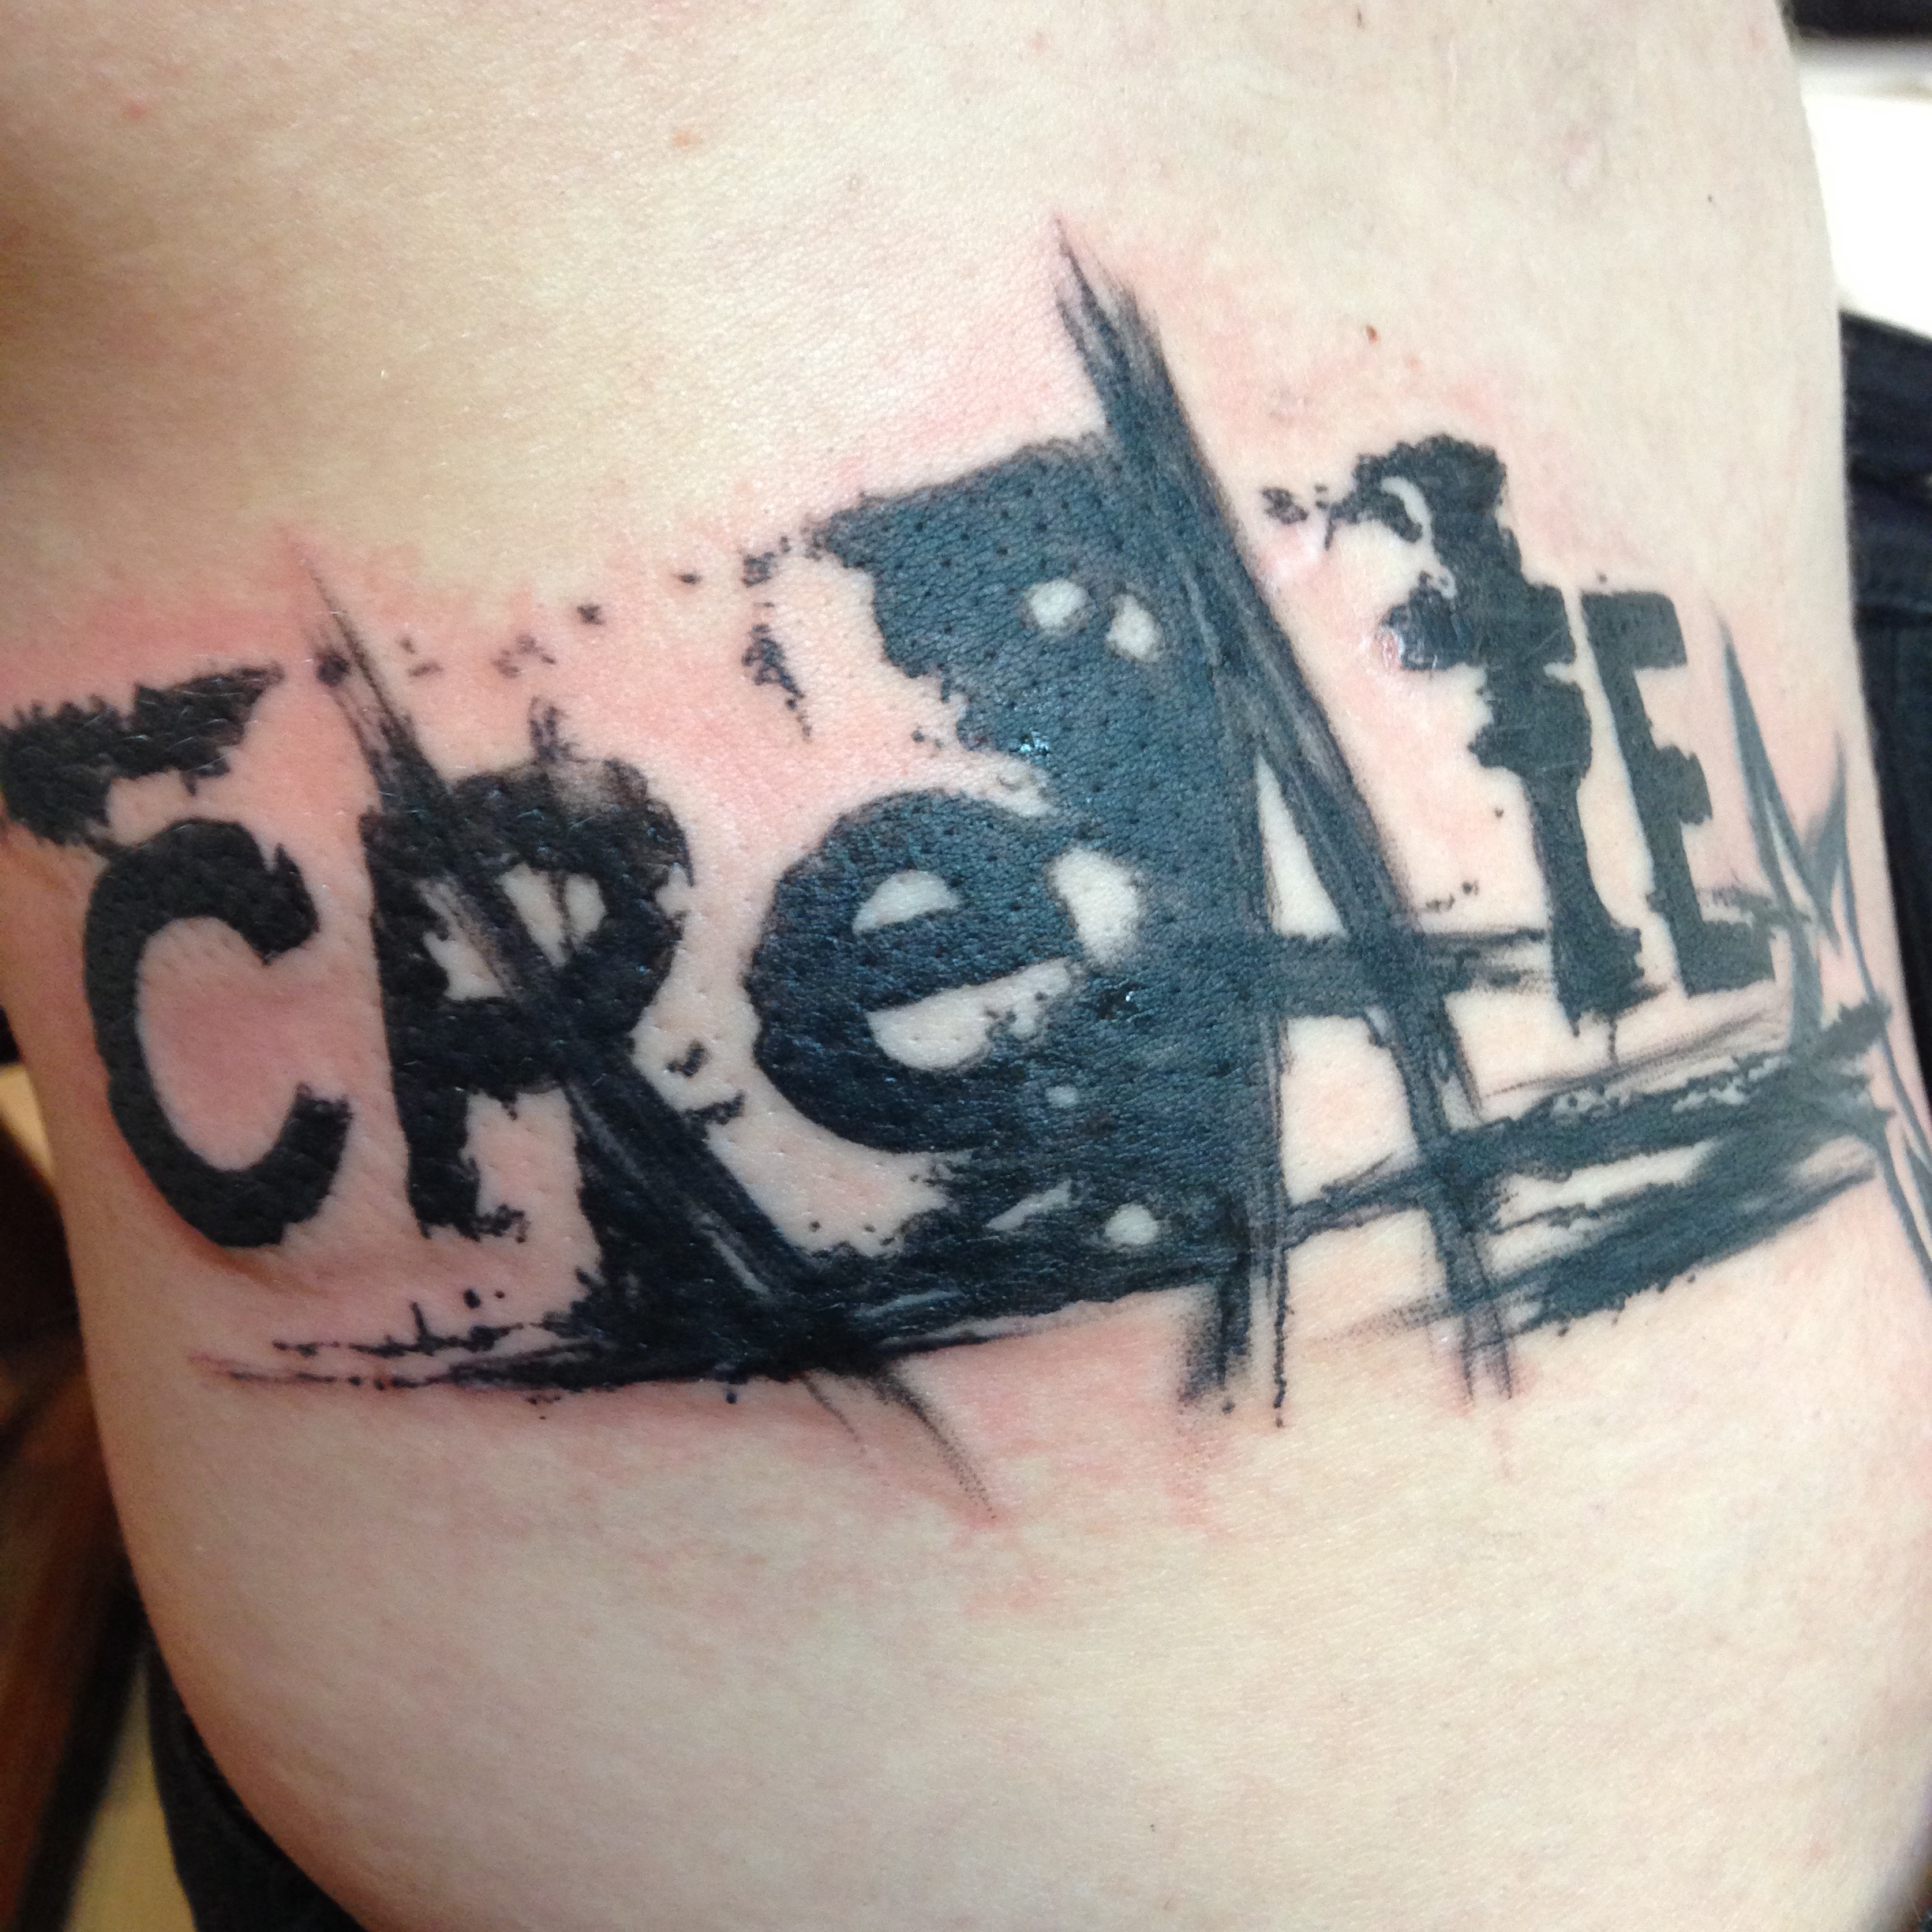 Abstract text tattoo